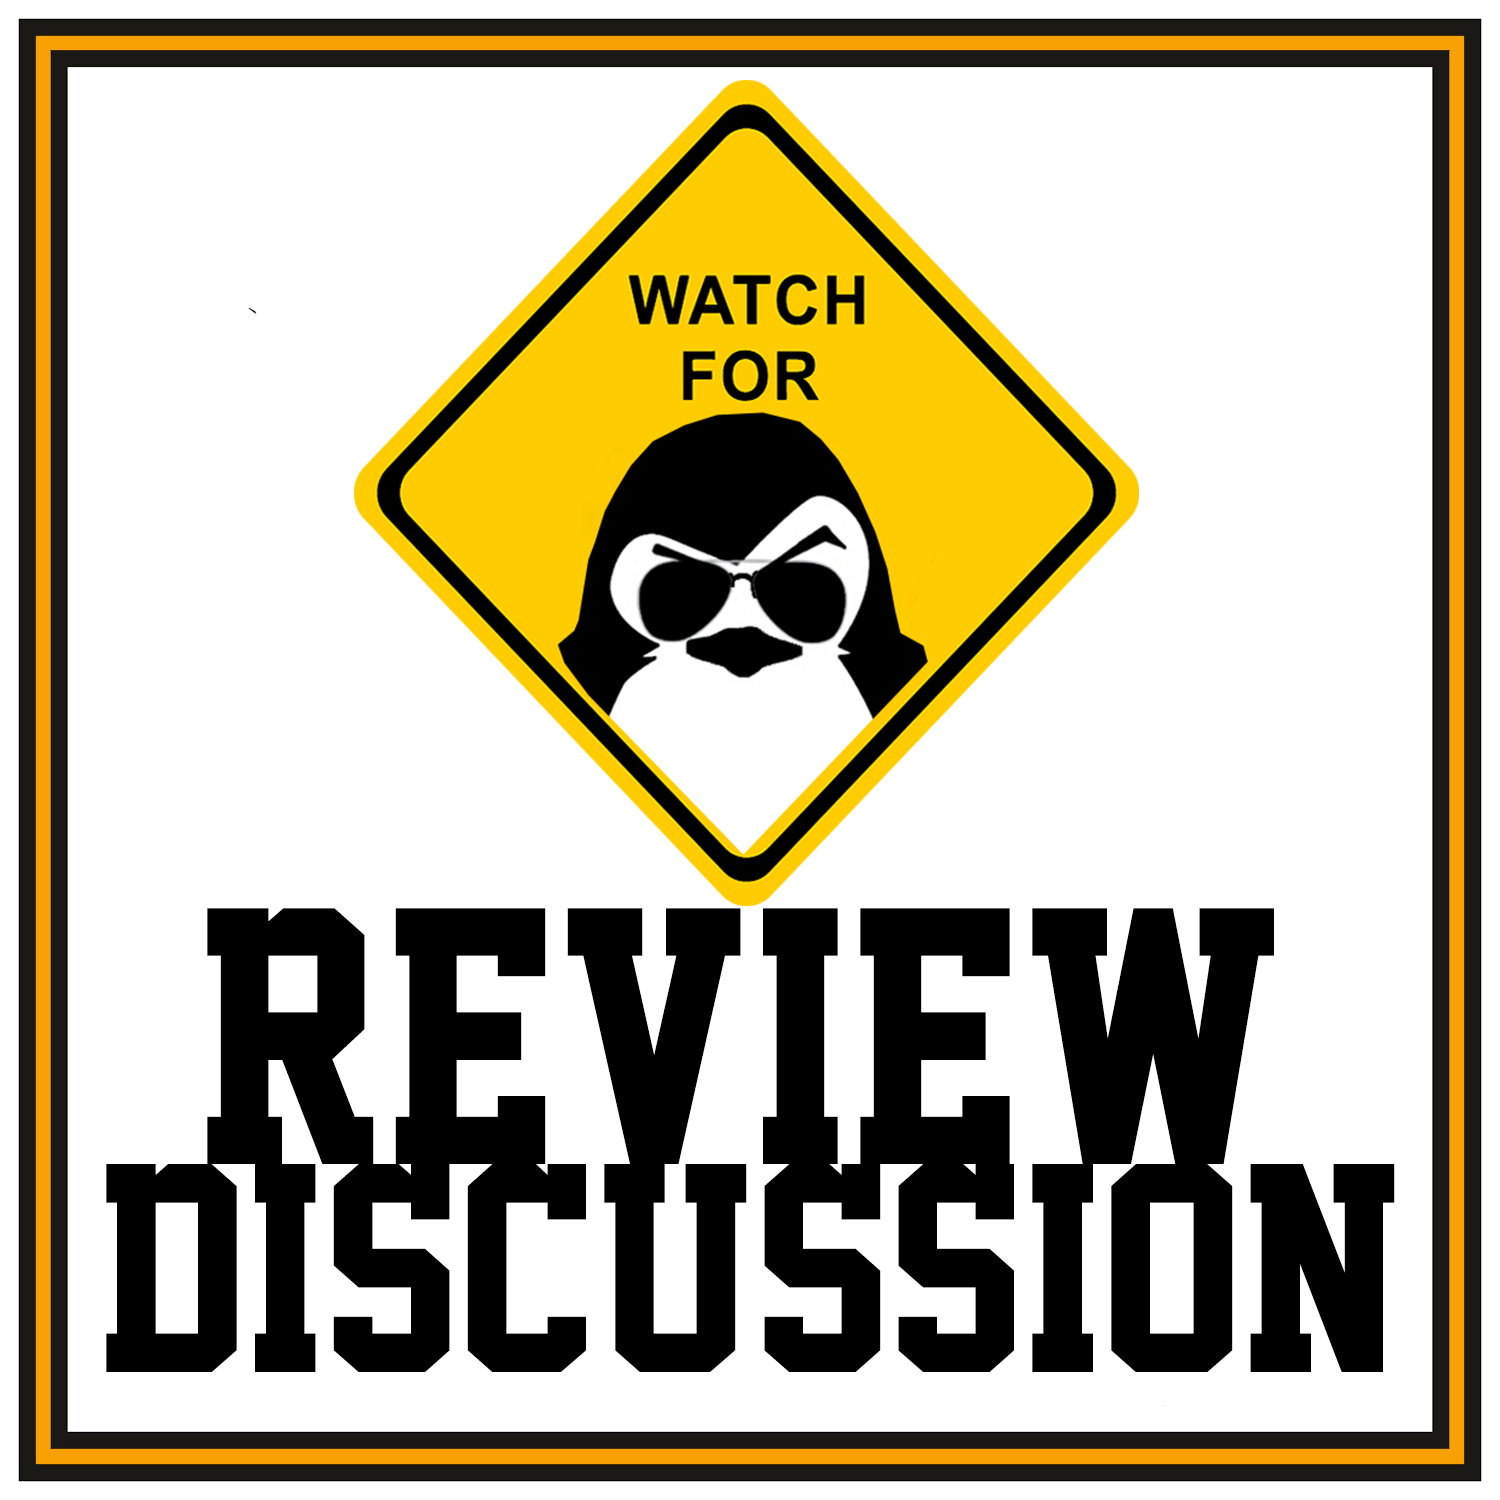 Review Discussion Podcast Artwork.png